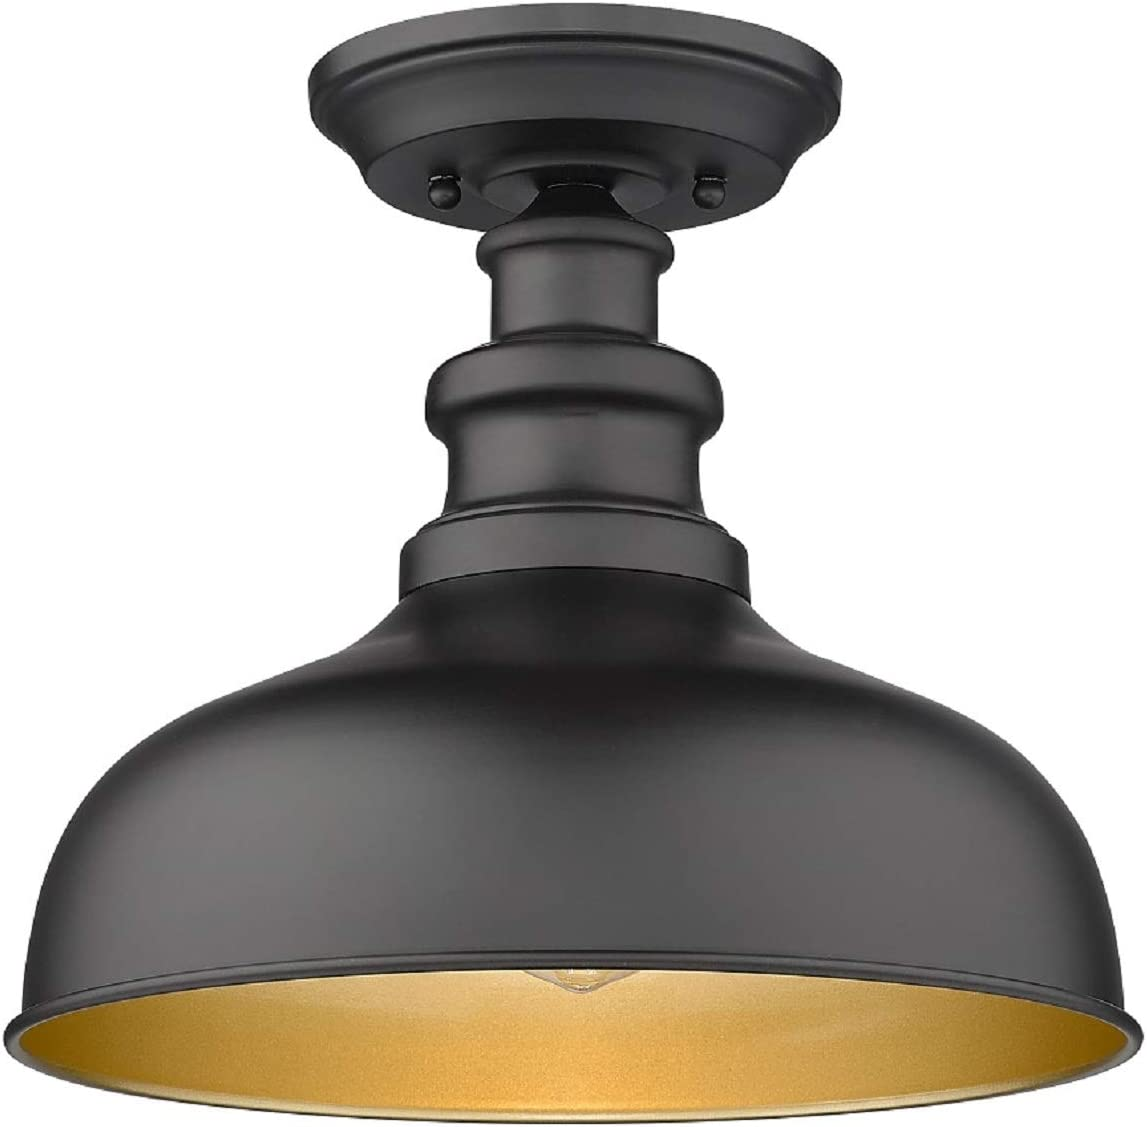 Bestshared Semi Flush Mount Ceiling Light, Farmhouse Close to Ceiling Light Fixture for entryway, Dining Room, Hallway (Black Exterior+ Copper Interior, 1 Pack)